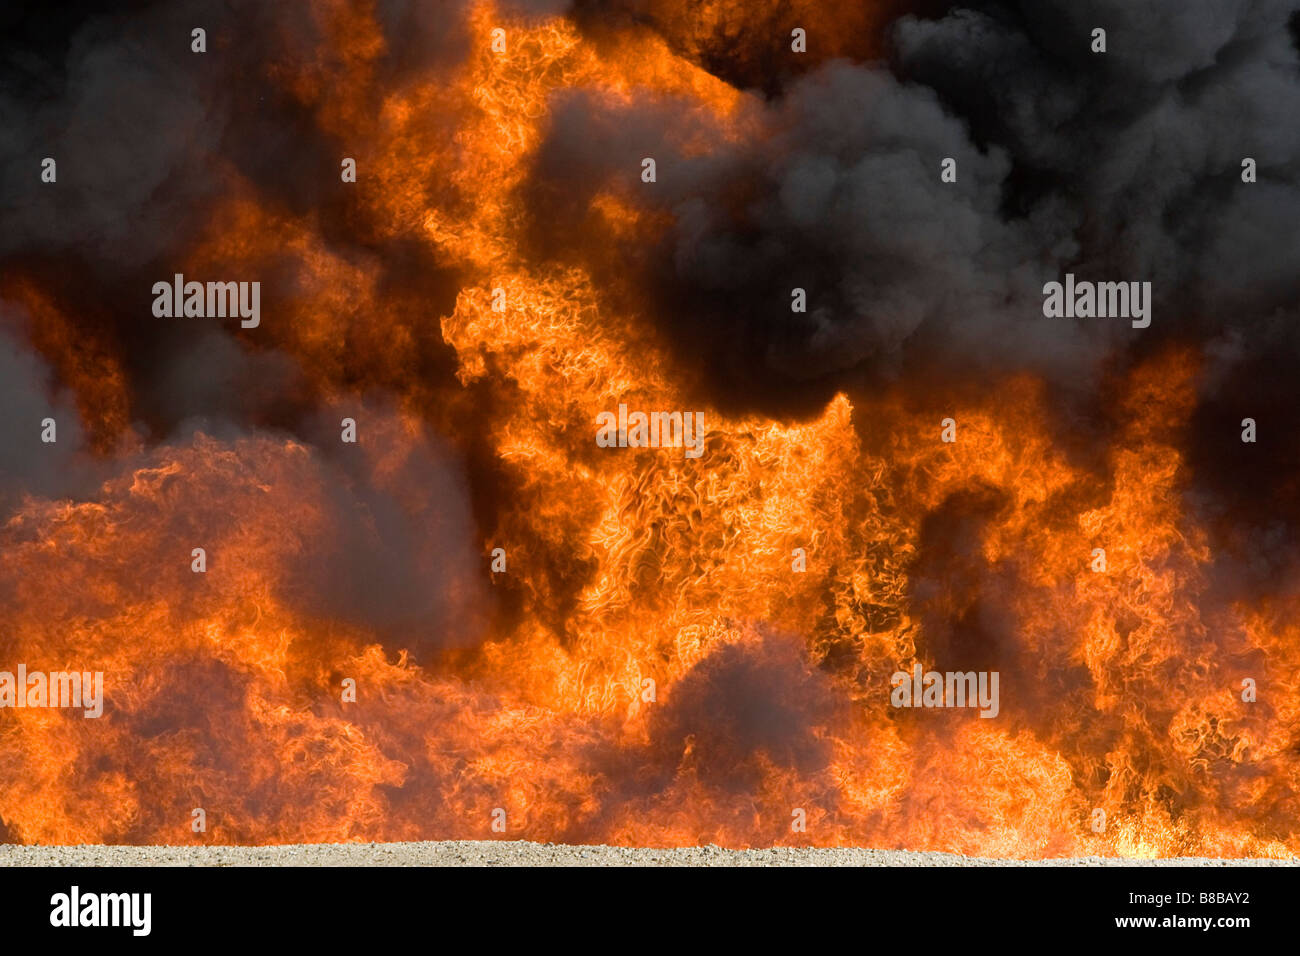 Jet fuel fire at an airport firefigher training facility in Boise Idaho USA - Stock Image